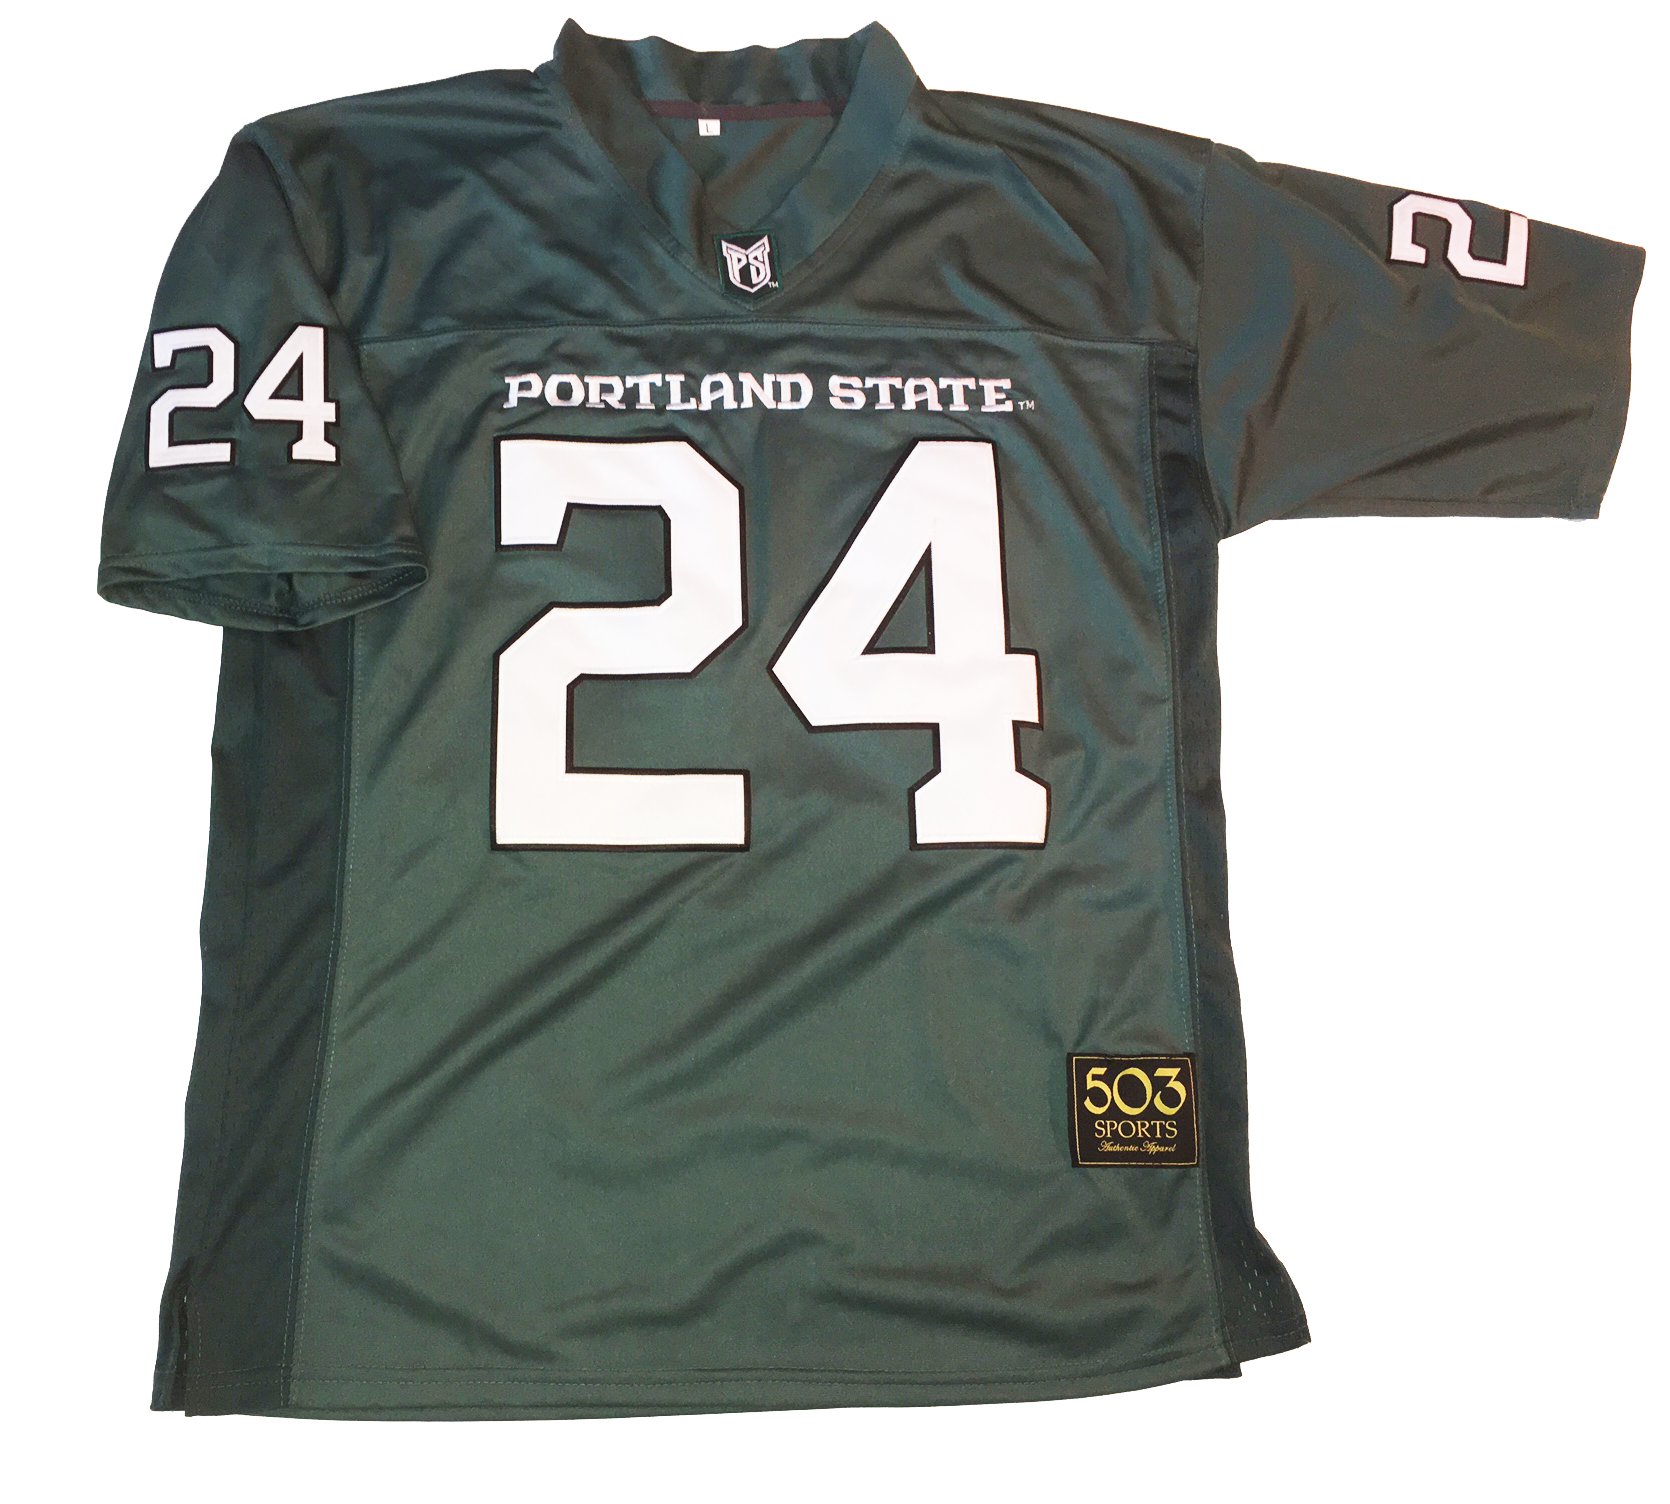 Portland State University Vikings officially licensed football jersey